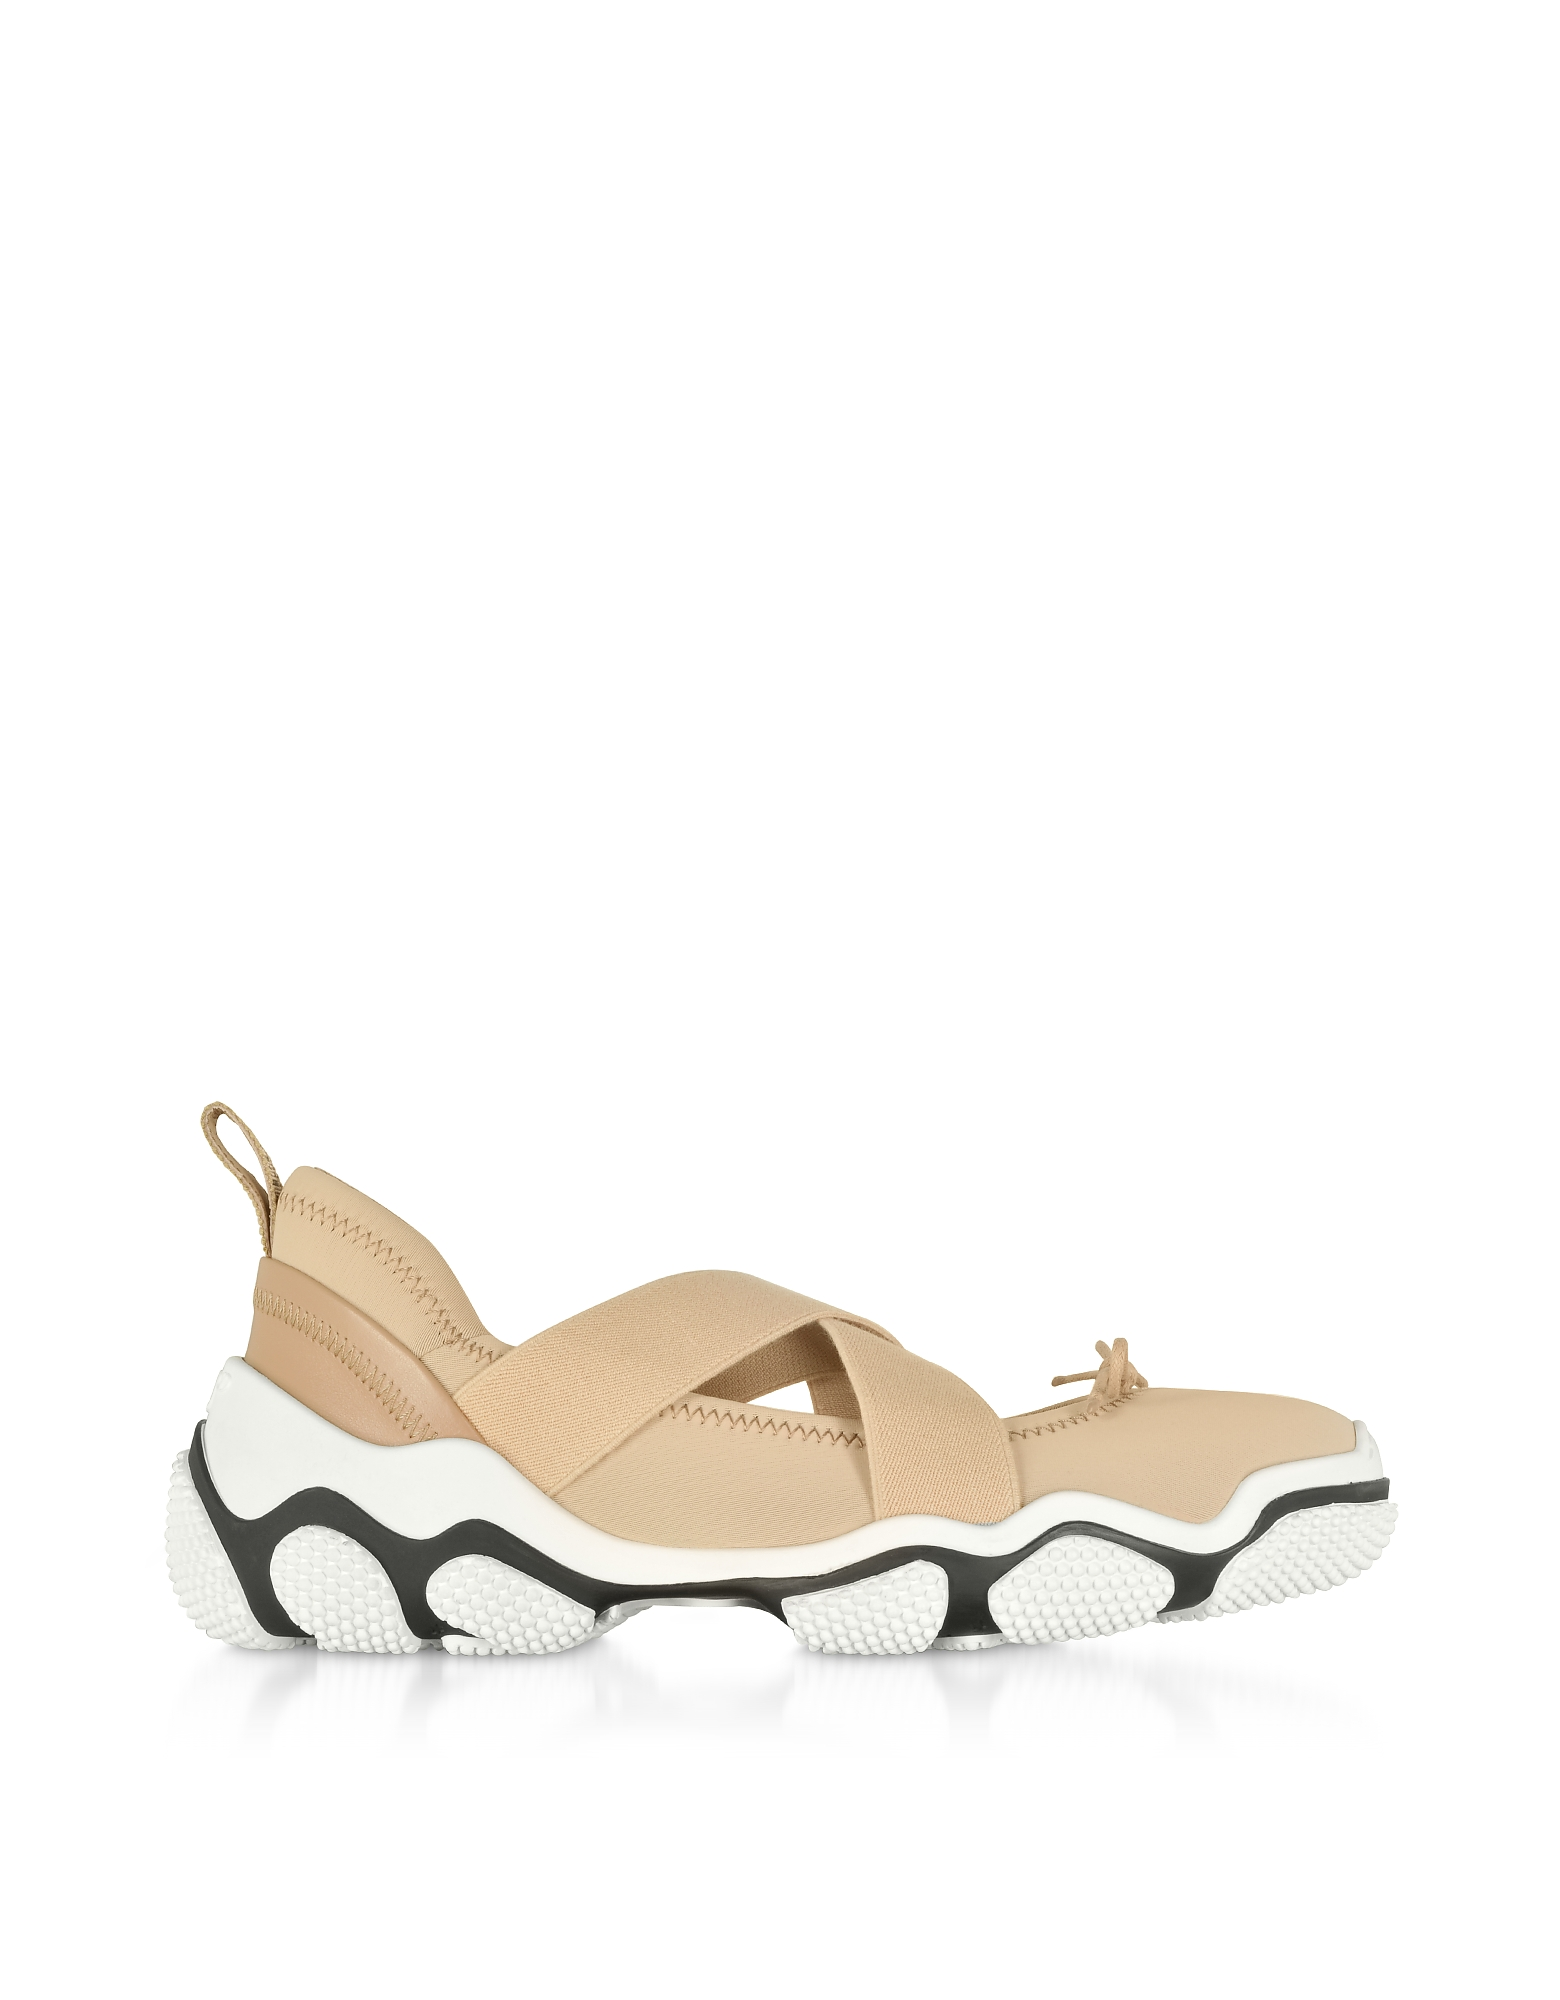 RED Valentino Designer Shoes, Nude Nylon Criss Cross Sneakers